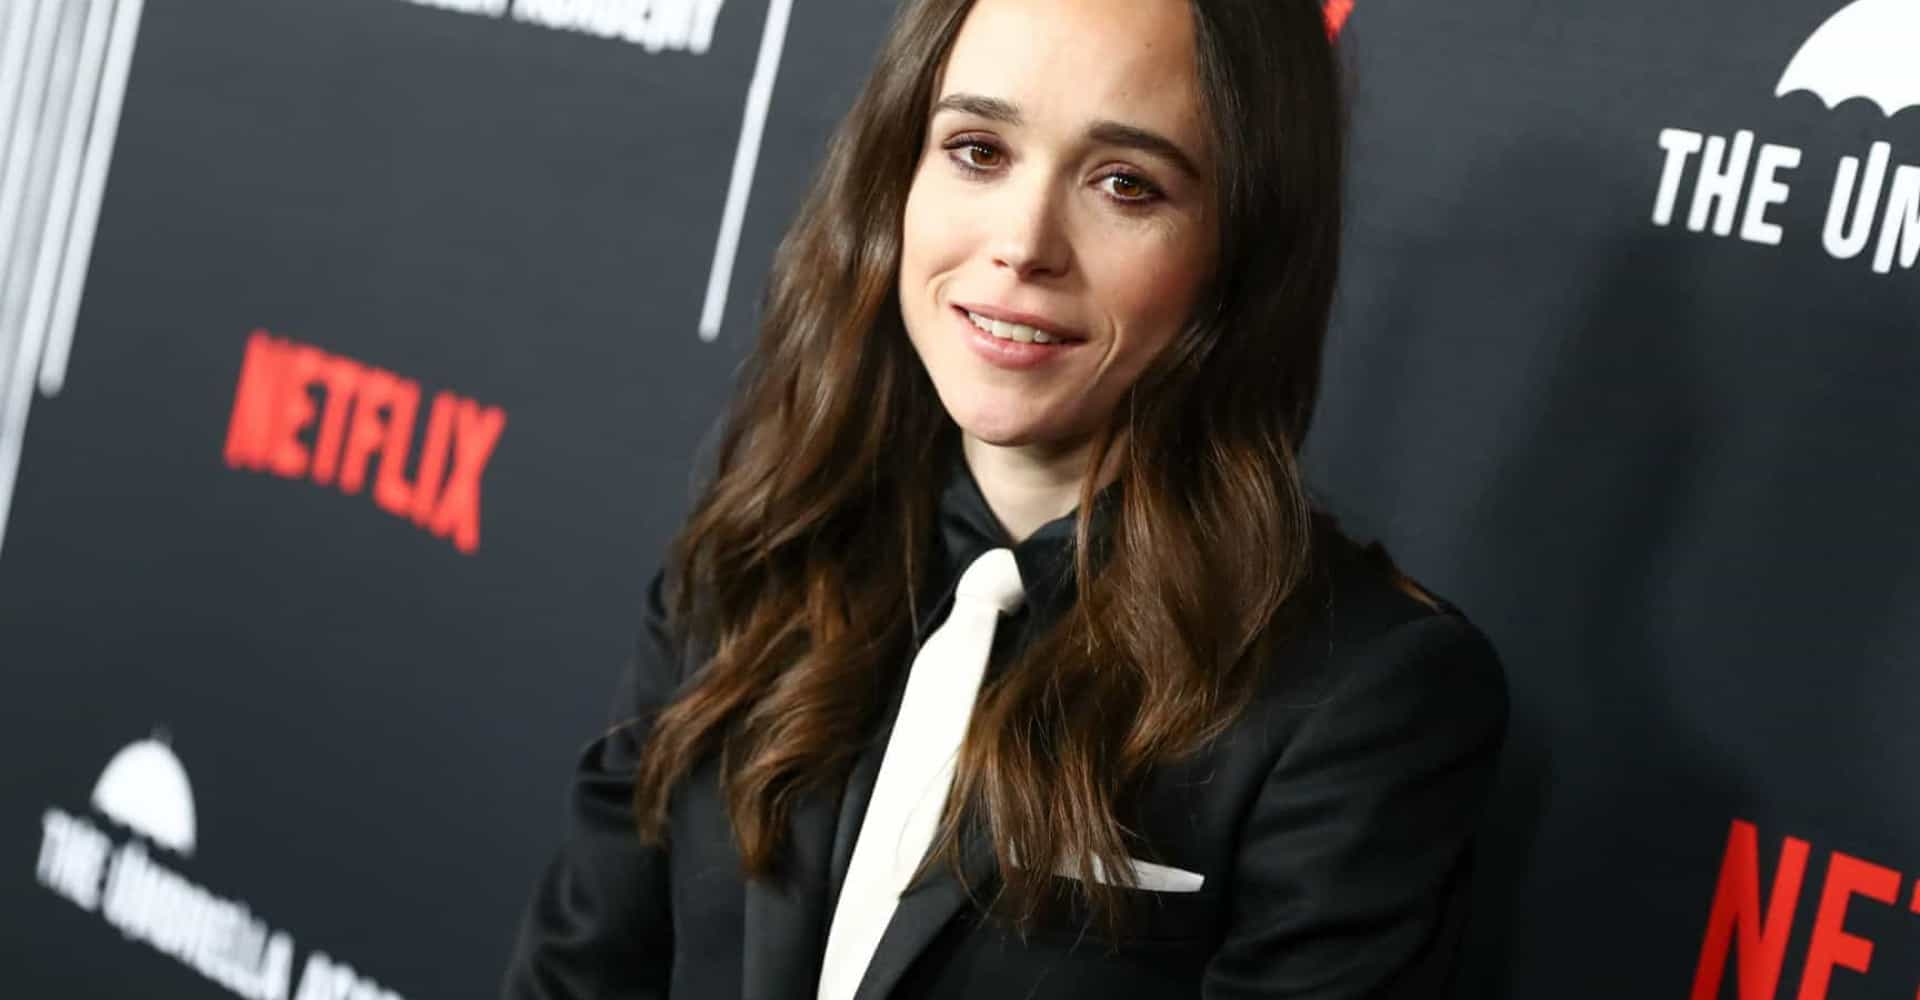 Canadian facts about birthday girl Ellen Page